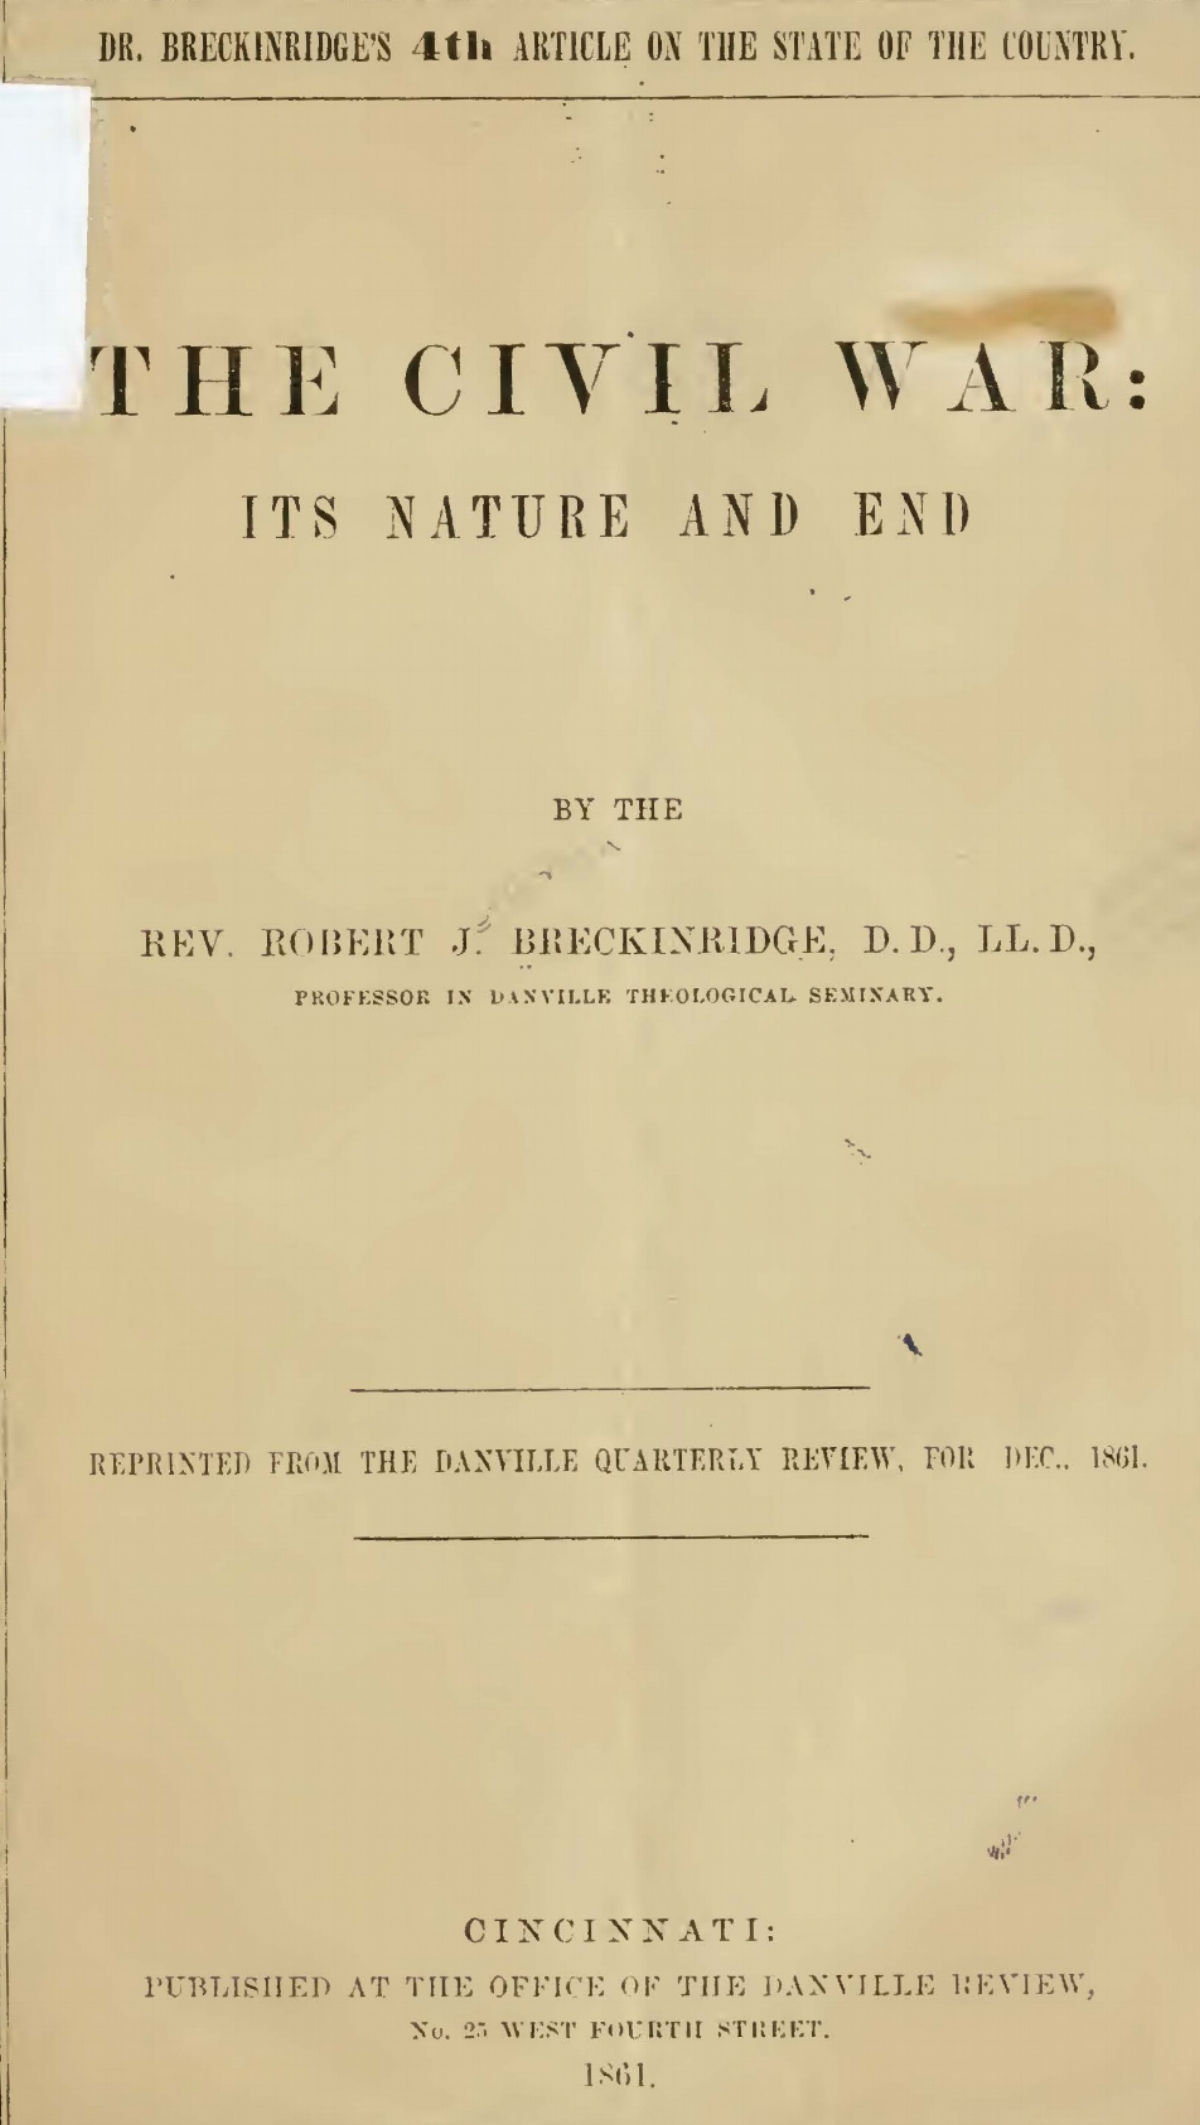 Breckinridge, Robert Jefferson, The Civil War Its Nature and End Title Page.jpg